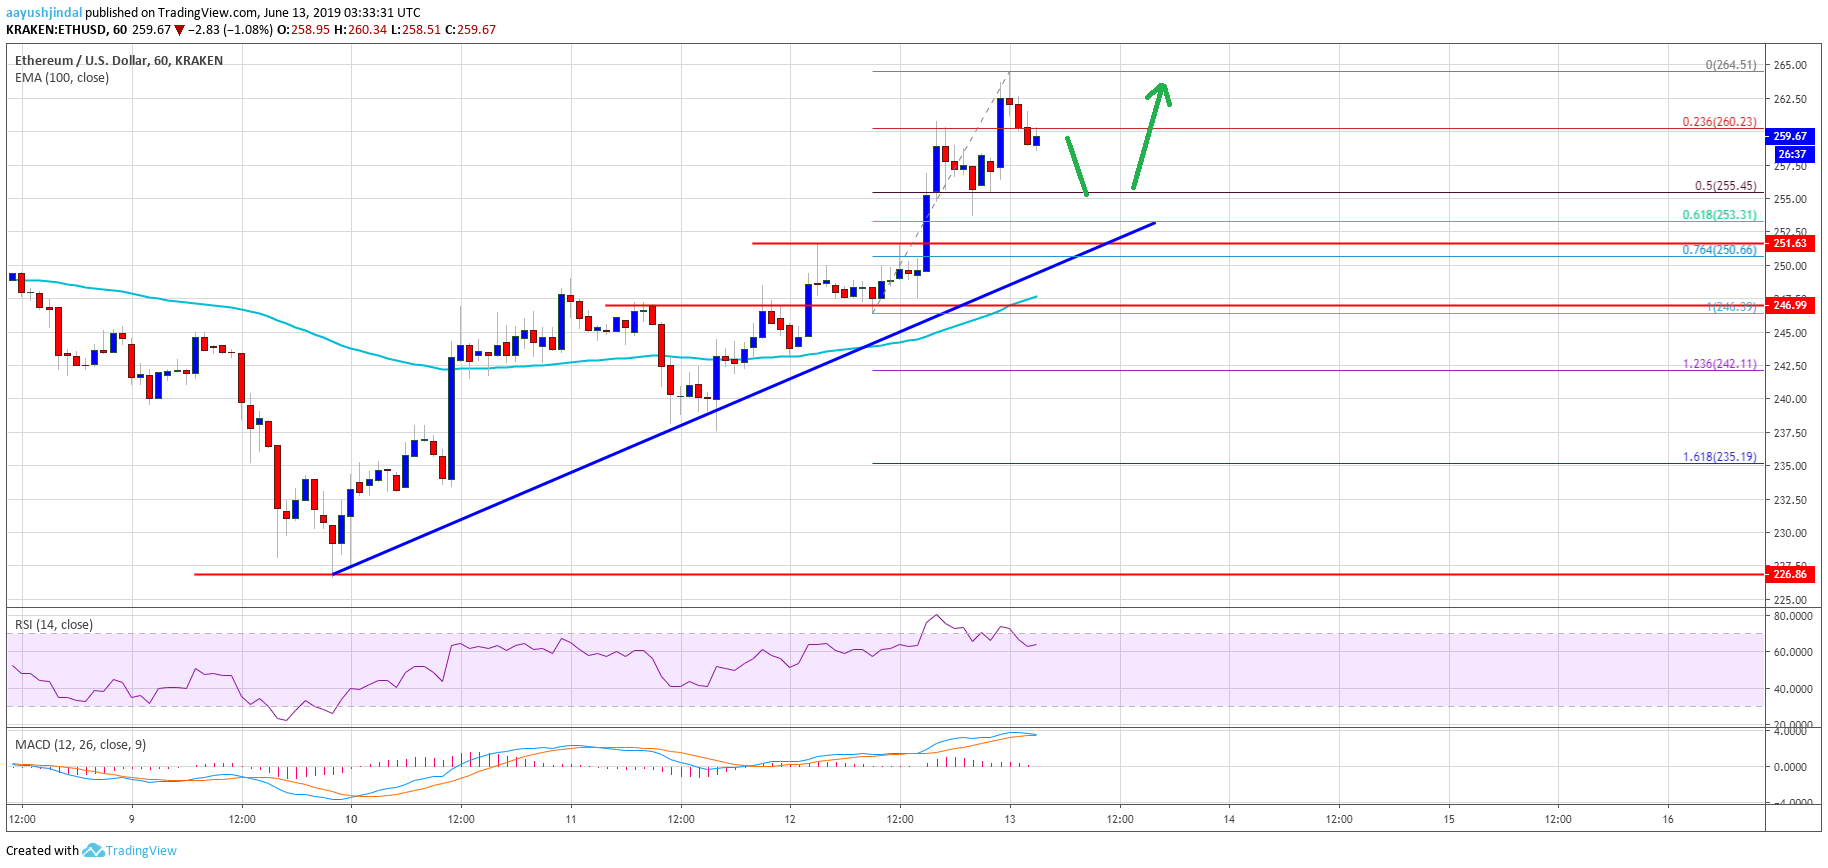 Ethereum (ETH) Price Rallies Above $260: Turned Buy On Dips